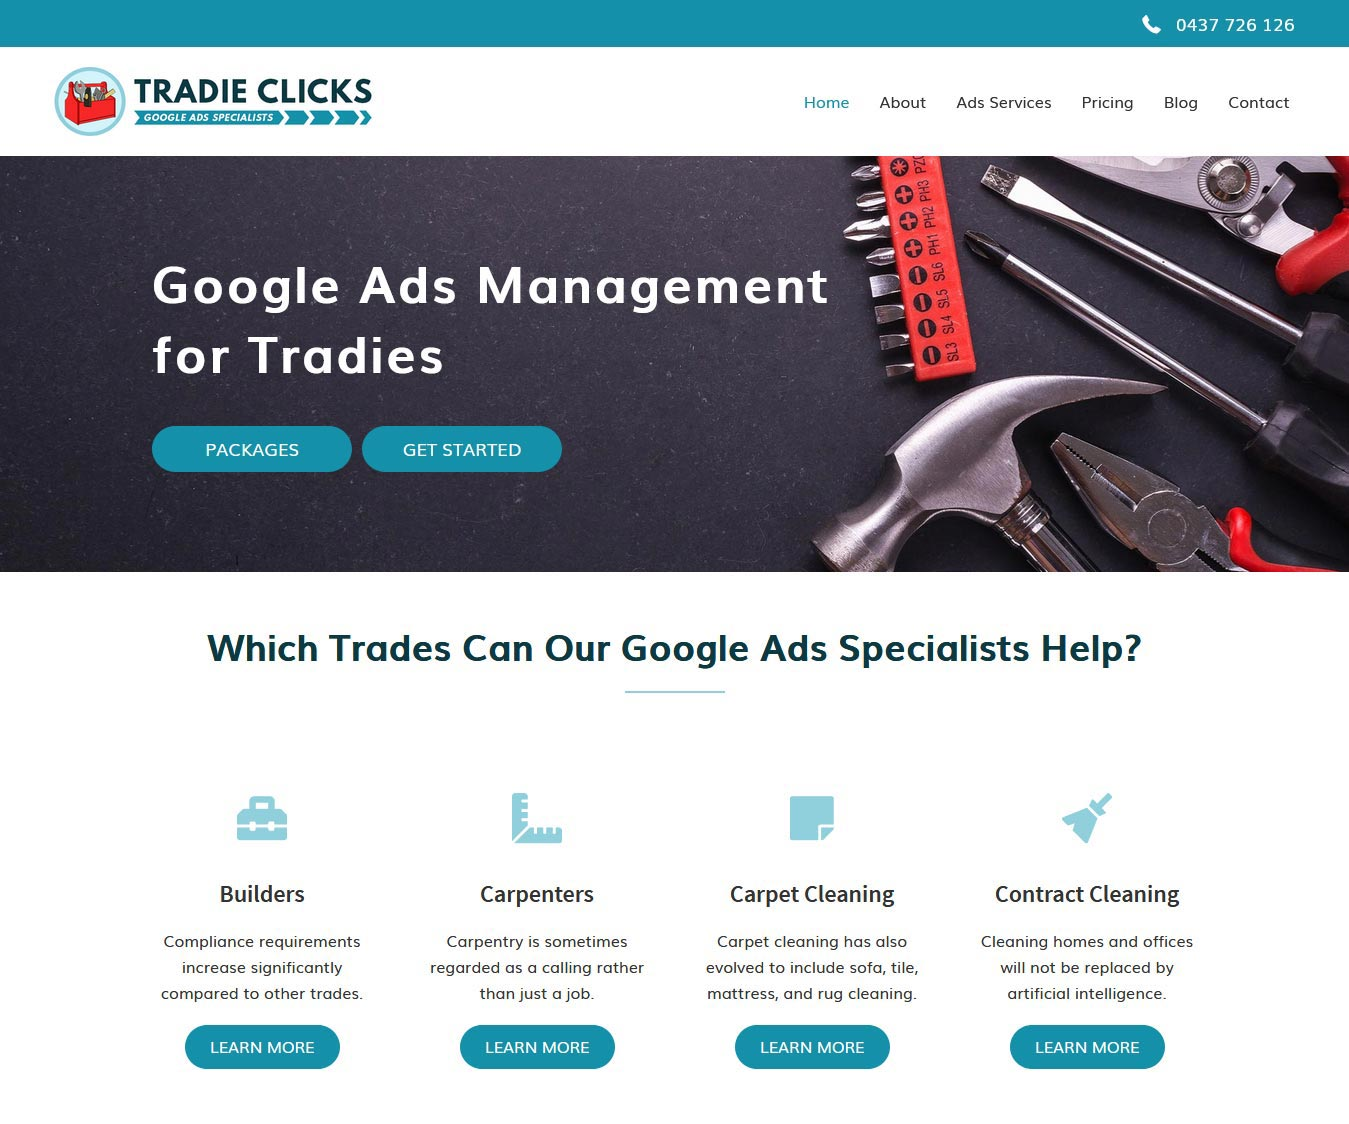 tradie-clicks-website